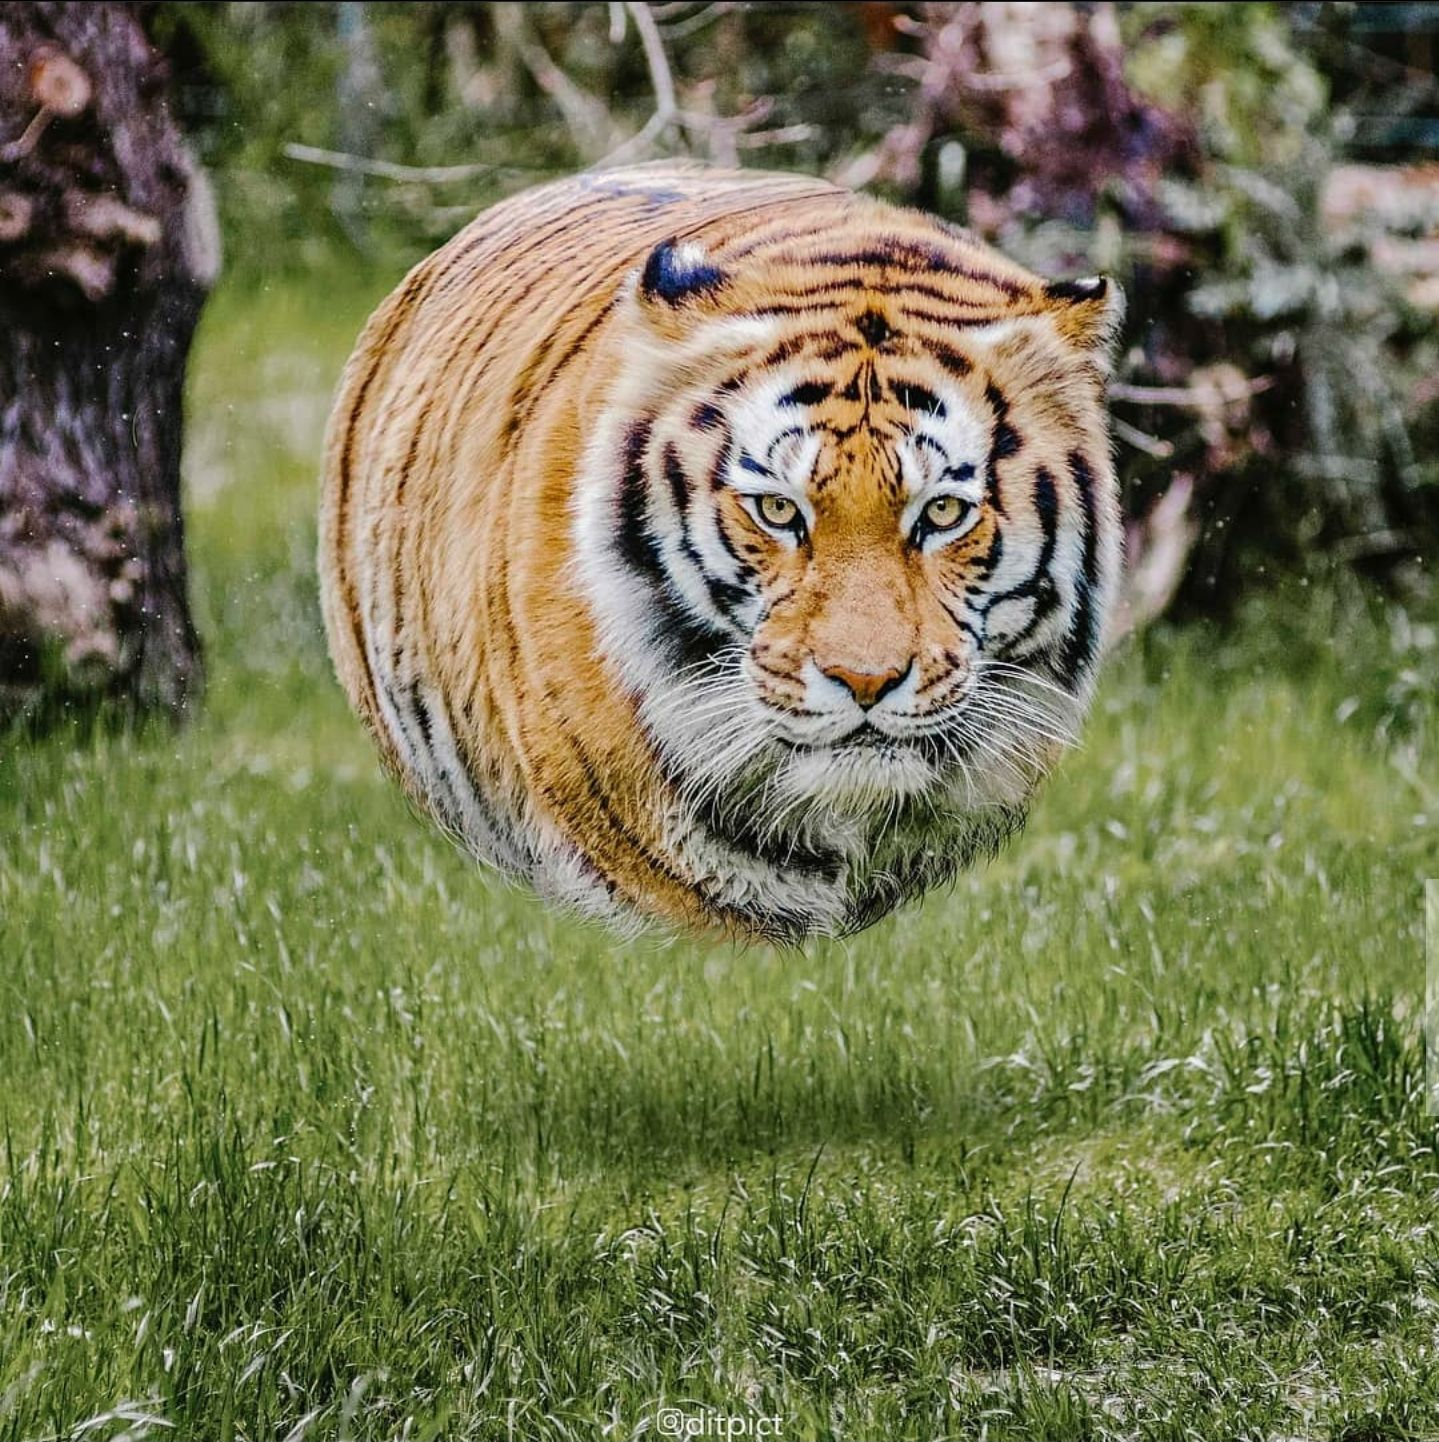 A Tiger without legs